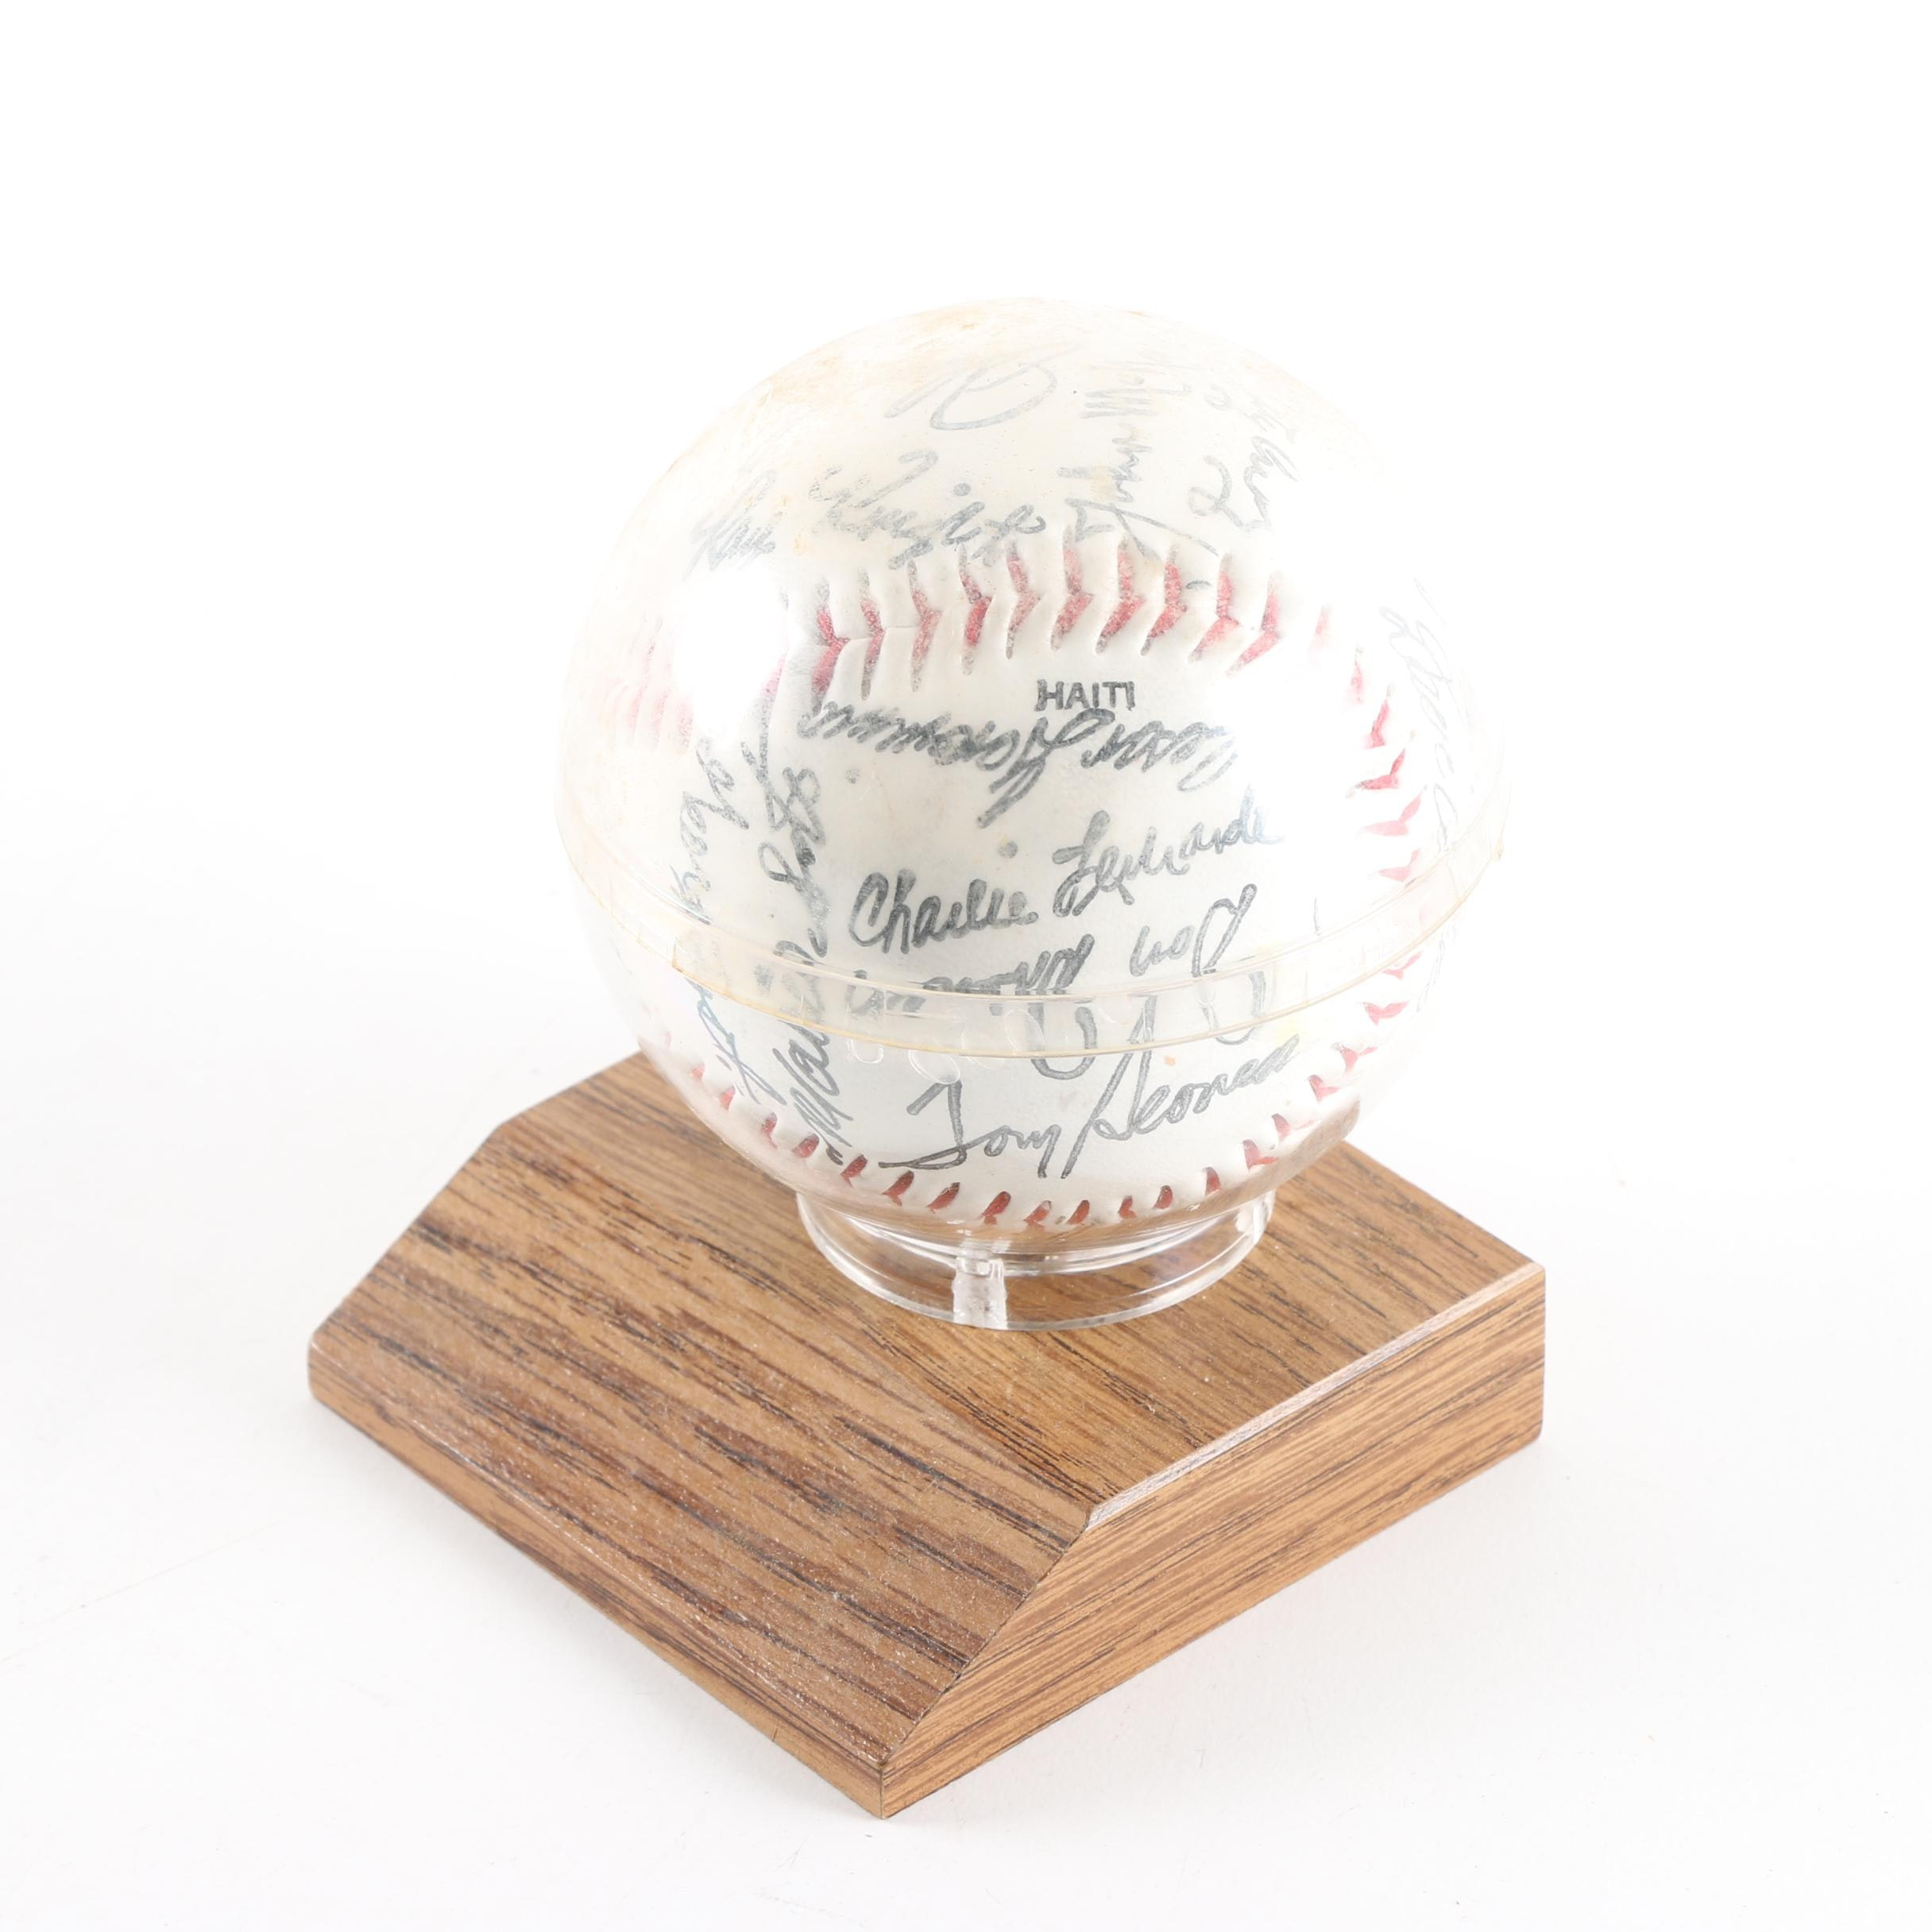 1979 Cincinnati Reds Team Signature Stamped Baseball